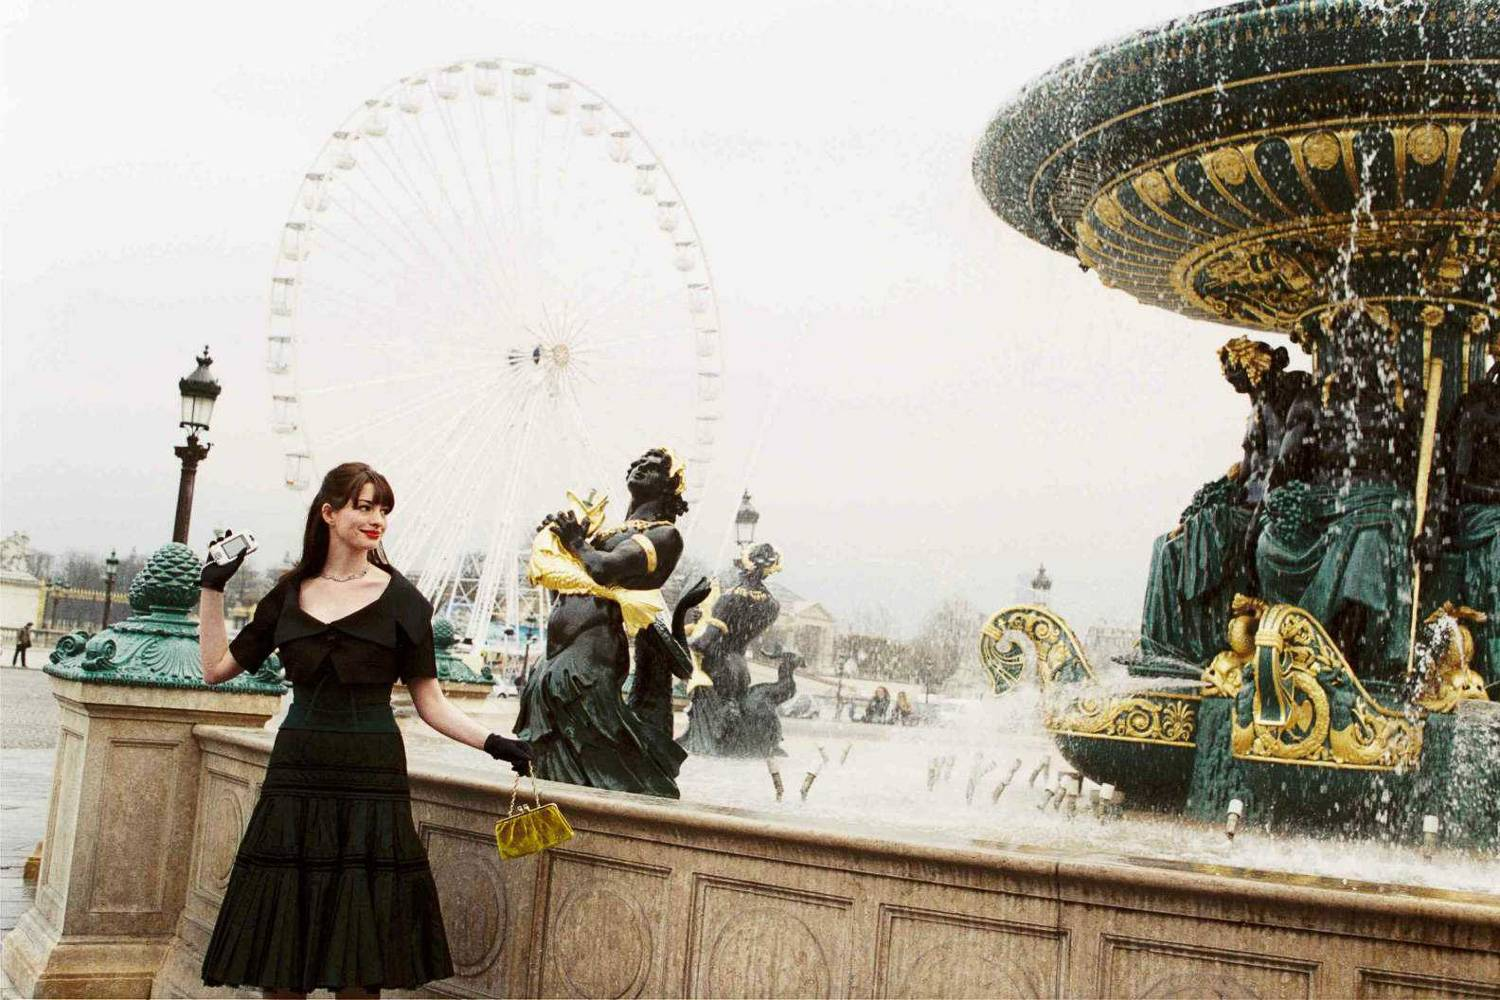 Image still of actress Anne Hathaway in a scene in The Devil Wears Prada at the fountain at Place de la Concorde.